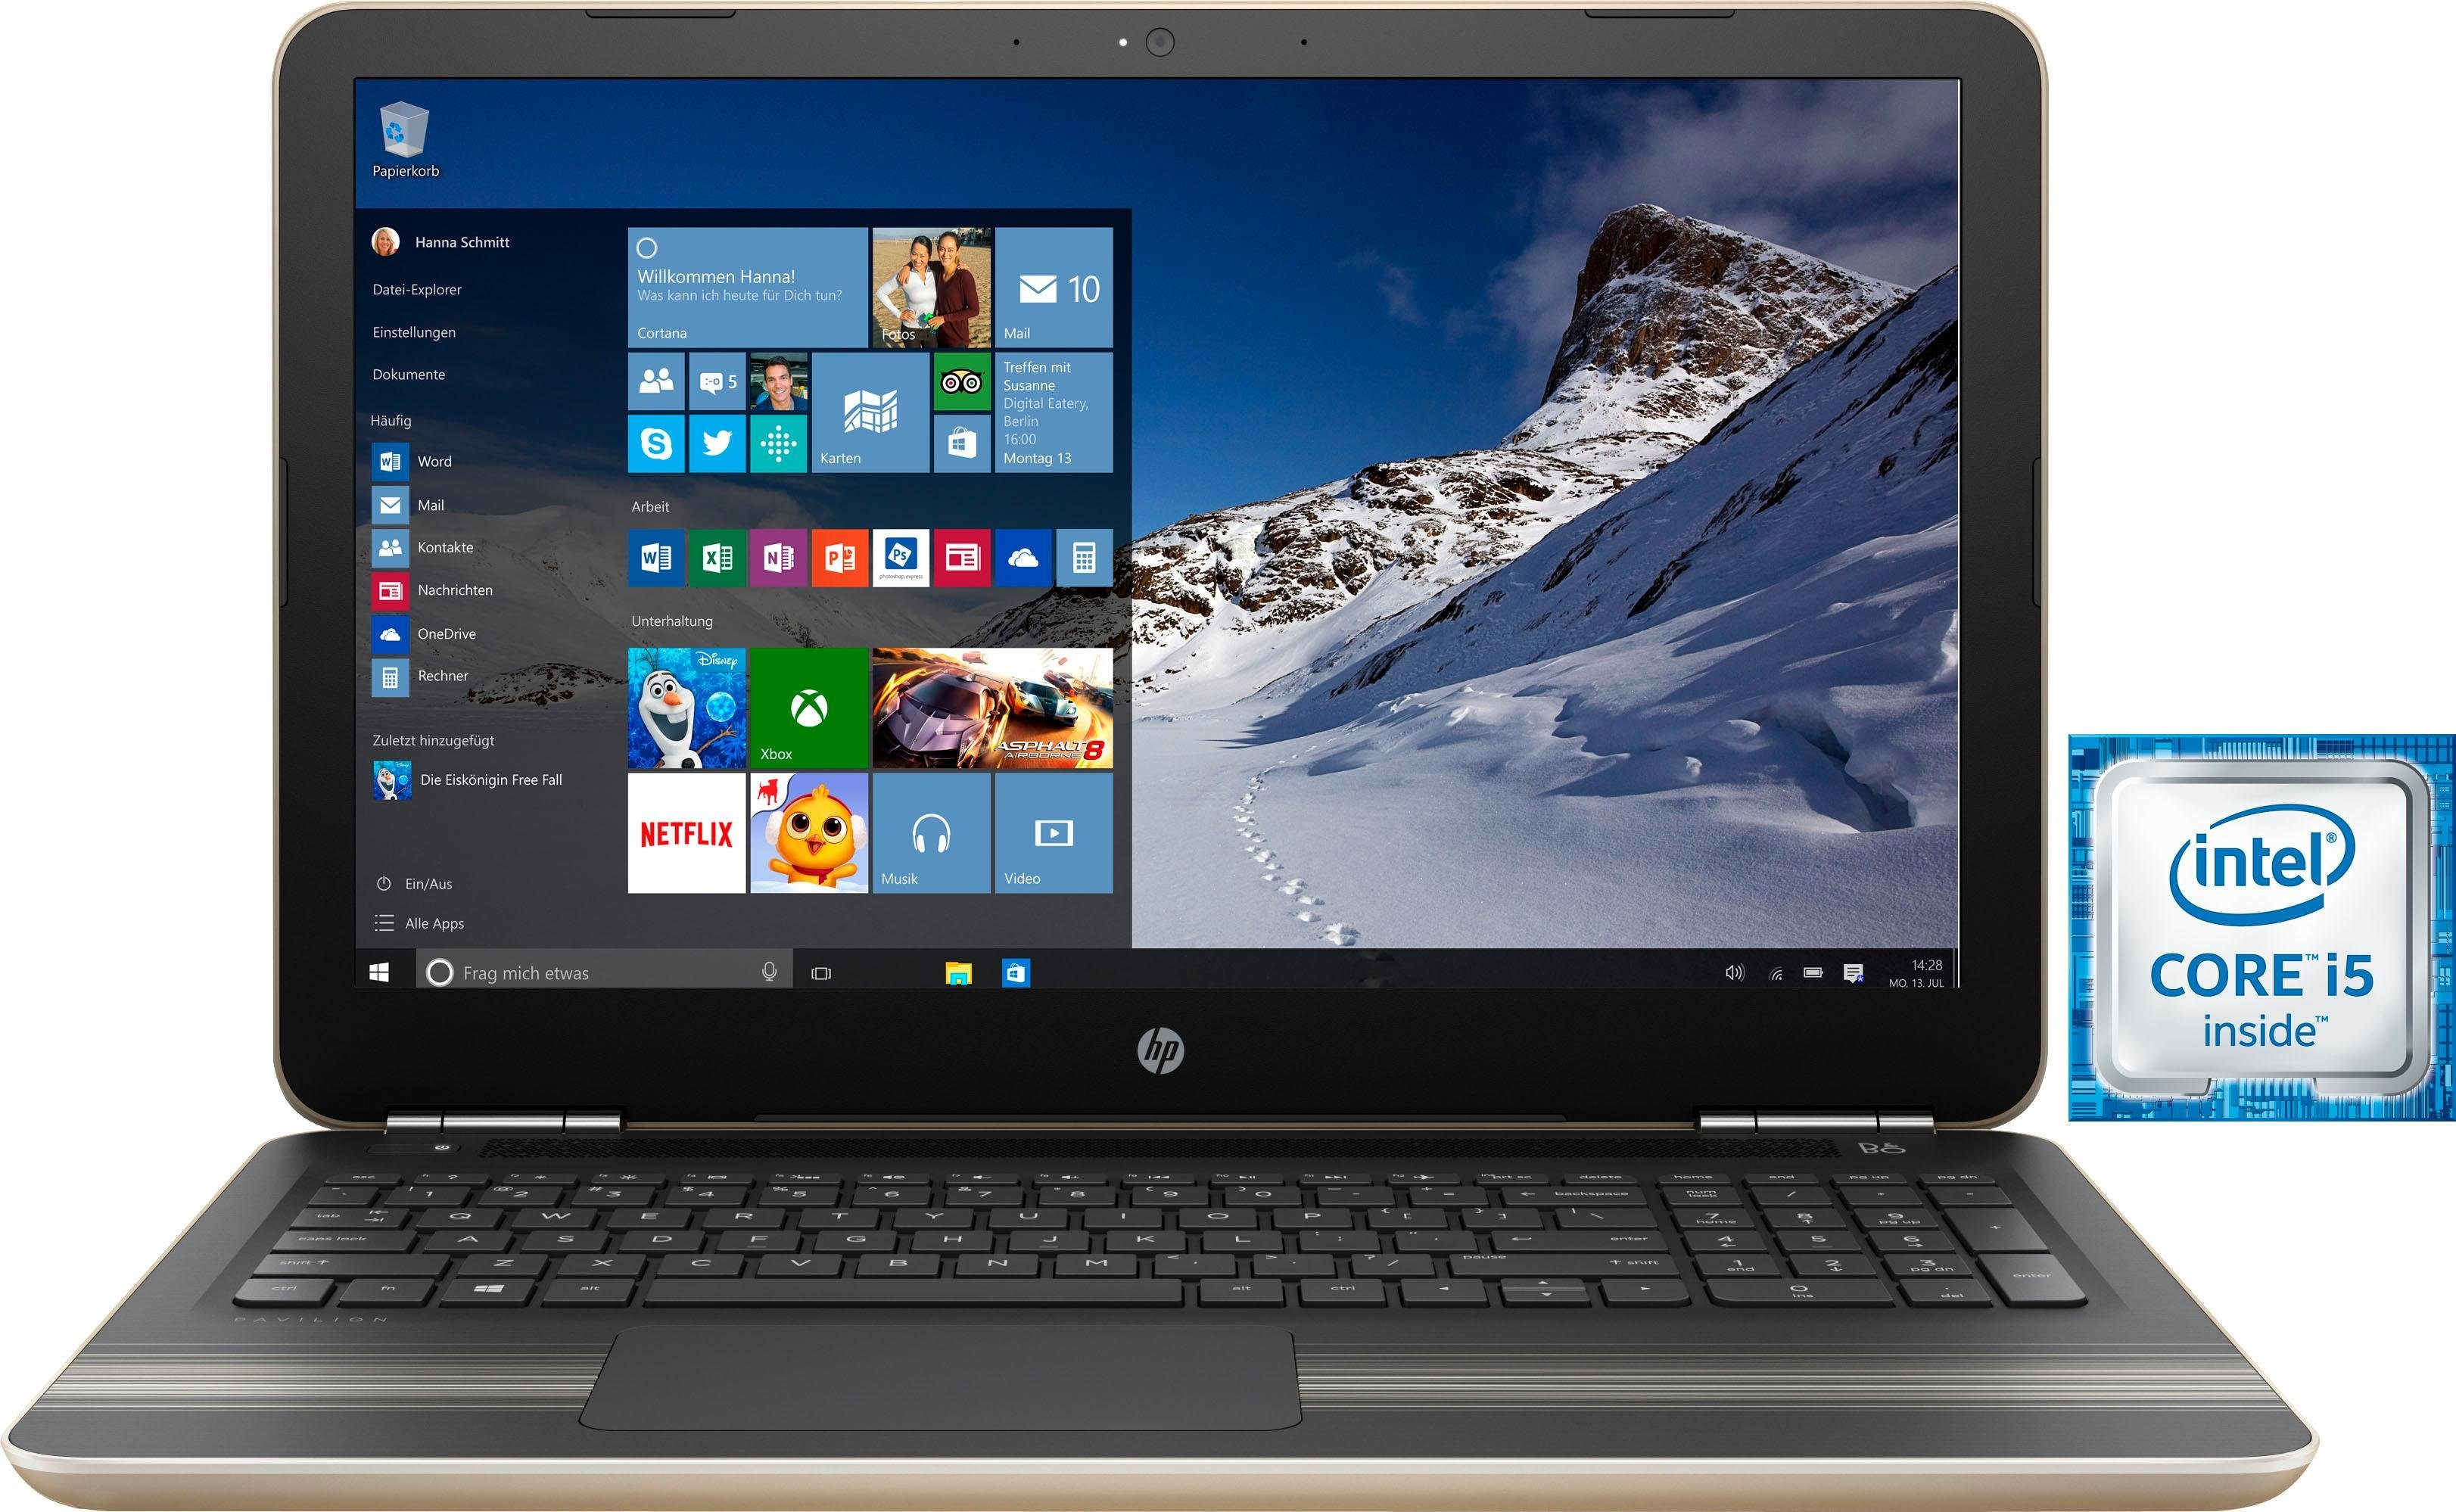 HP Pavilion 15-au147ng Notebook, Intel® Core™ i5, 39,6 cm (15,6 Zoll), 1128 GB Speicher